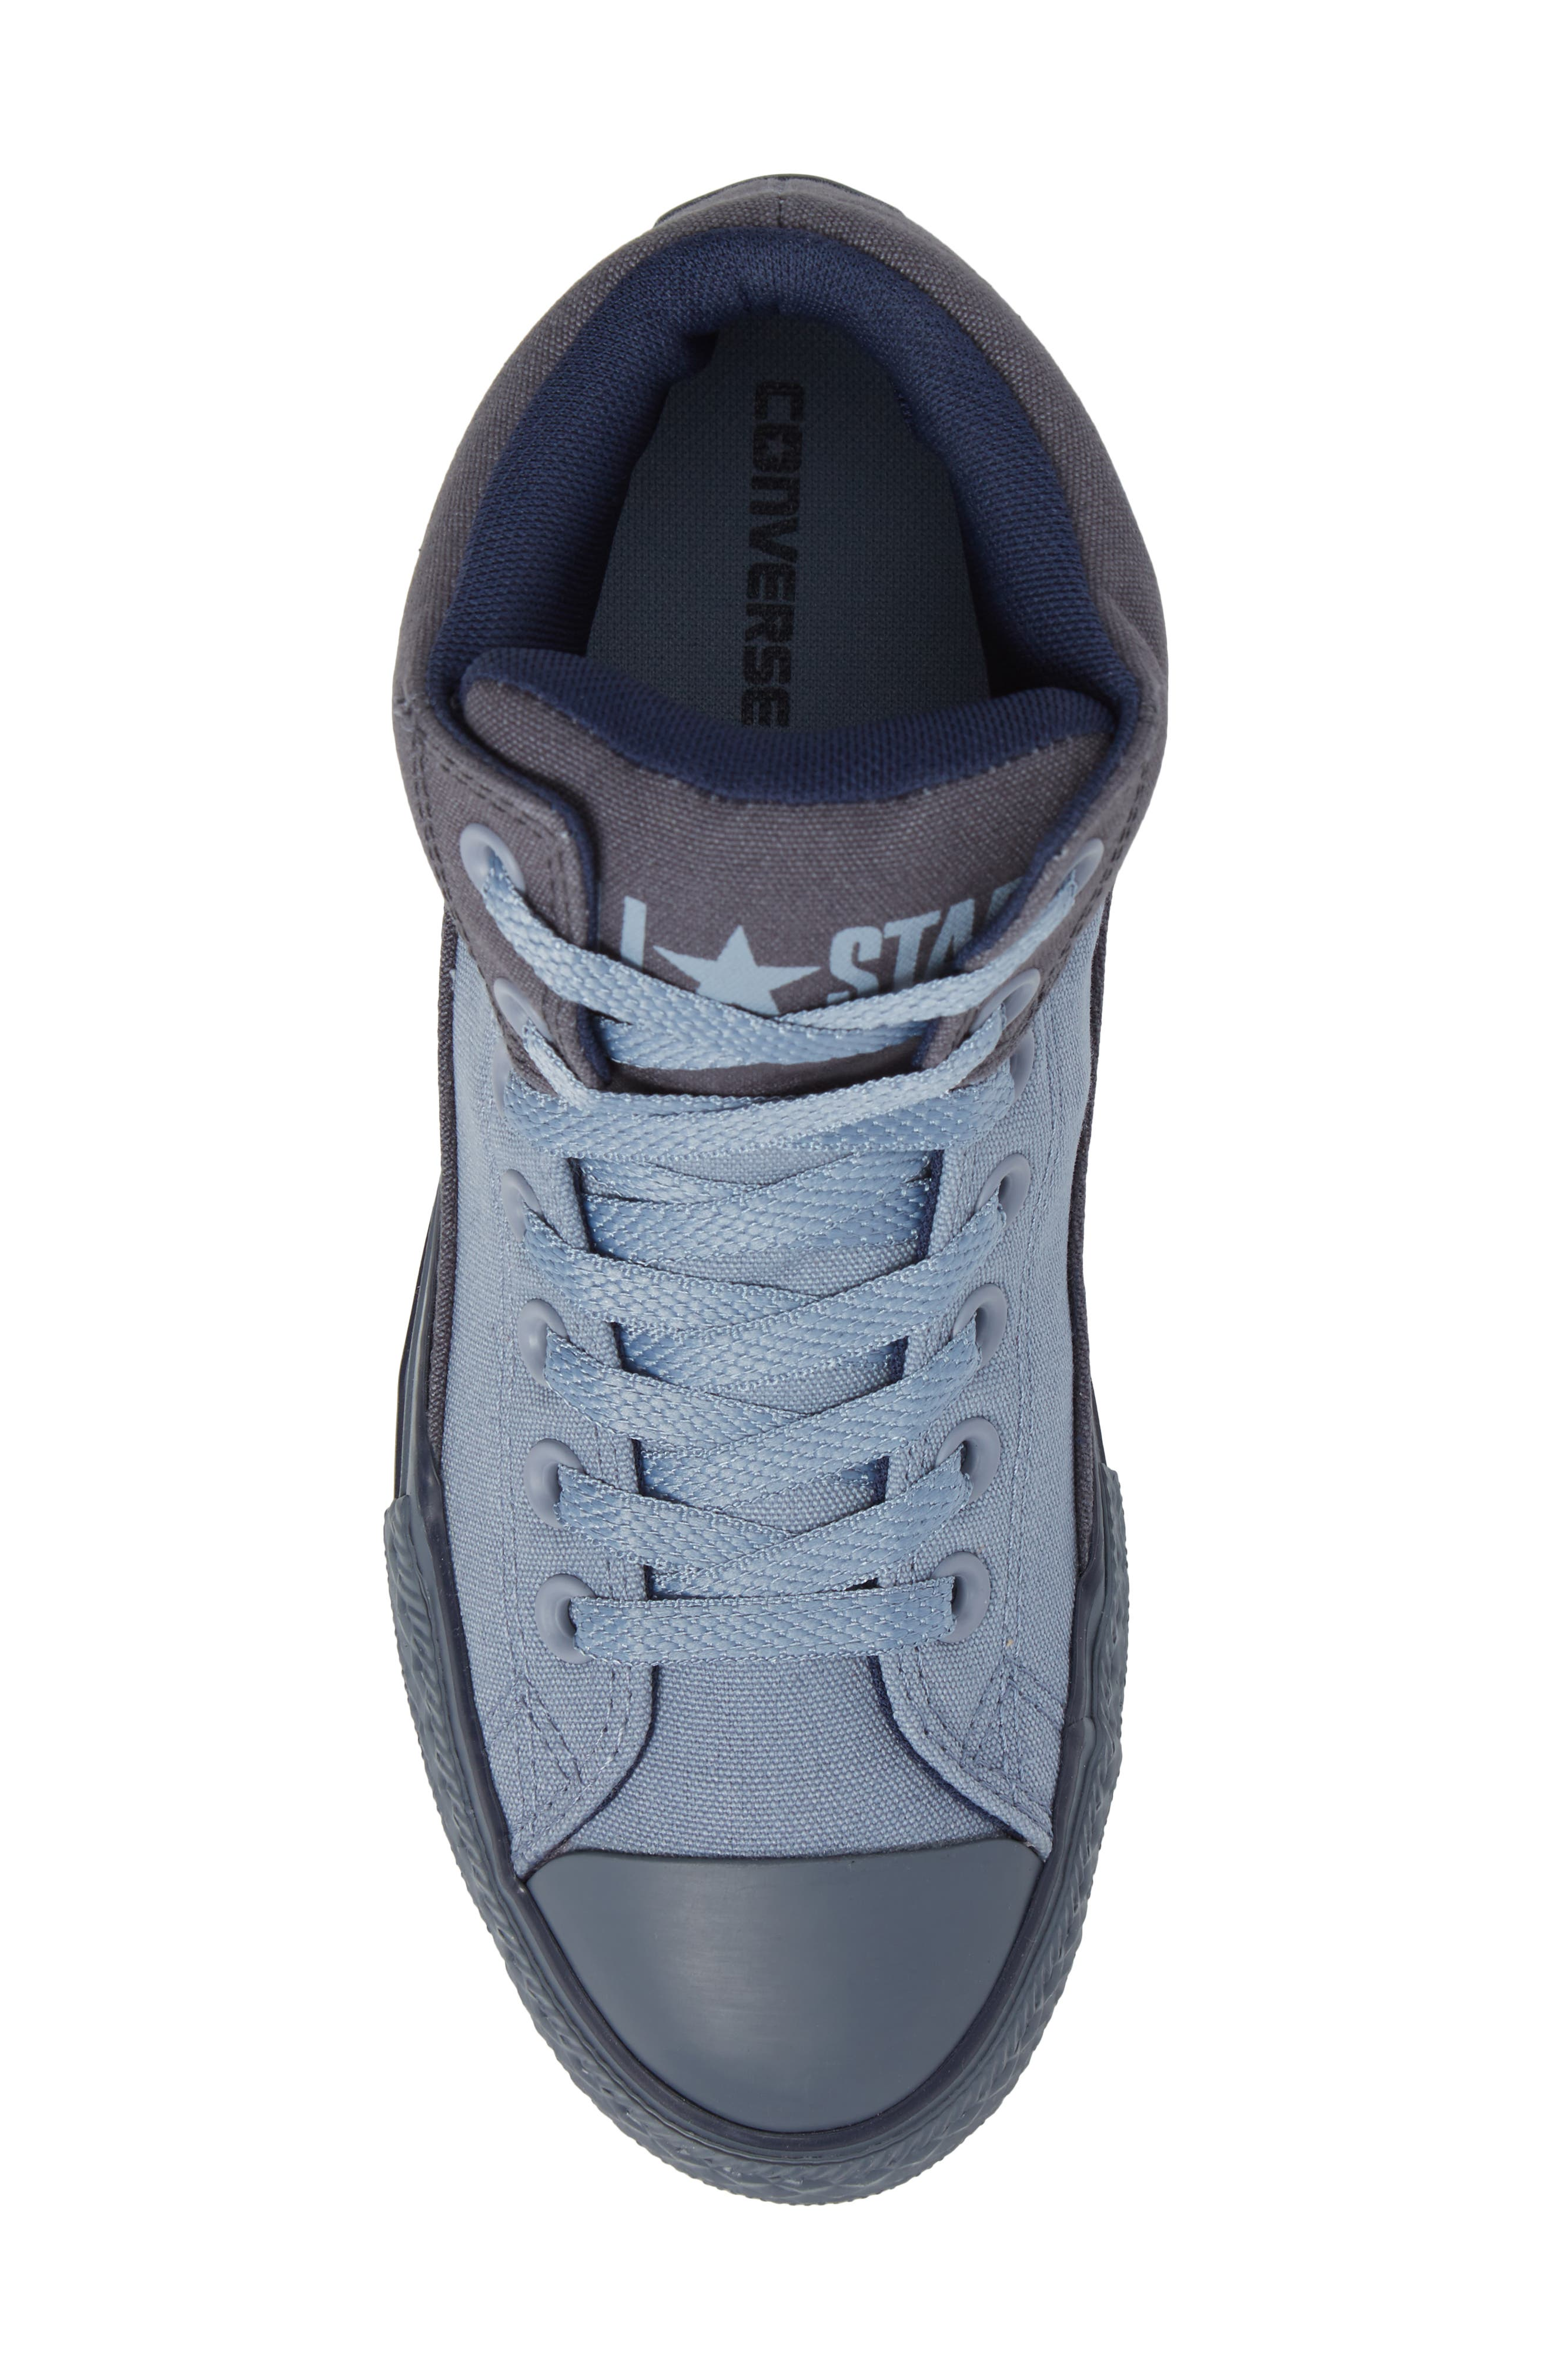 Chuck Taylor<sup>®</sup> All Star<sup>®</sup> High Street High Top Sneaker,                             Alternate thumbnail 5, color,                             Sharkskin Canvas